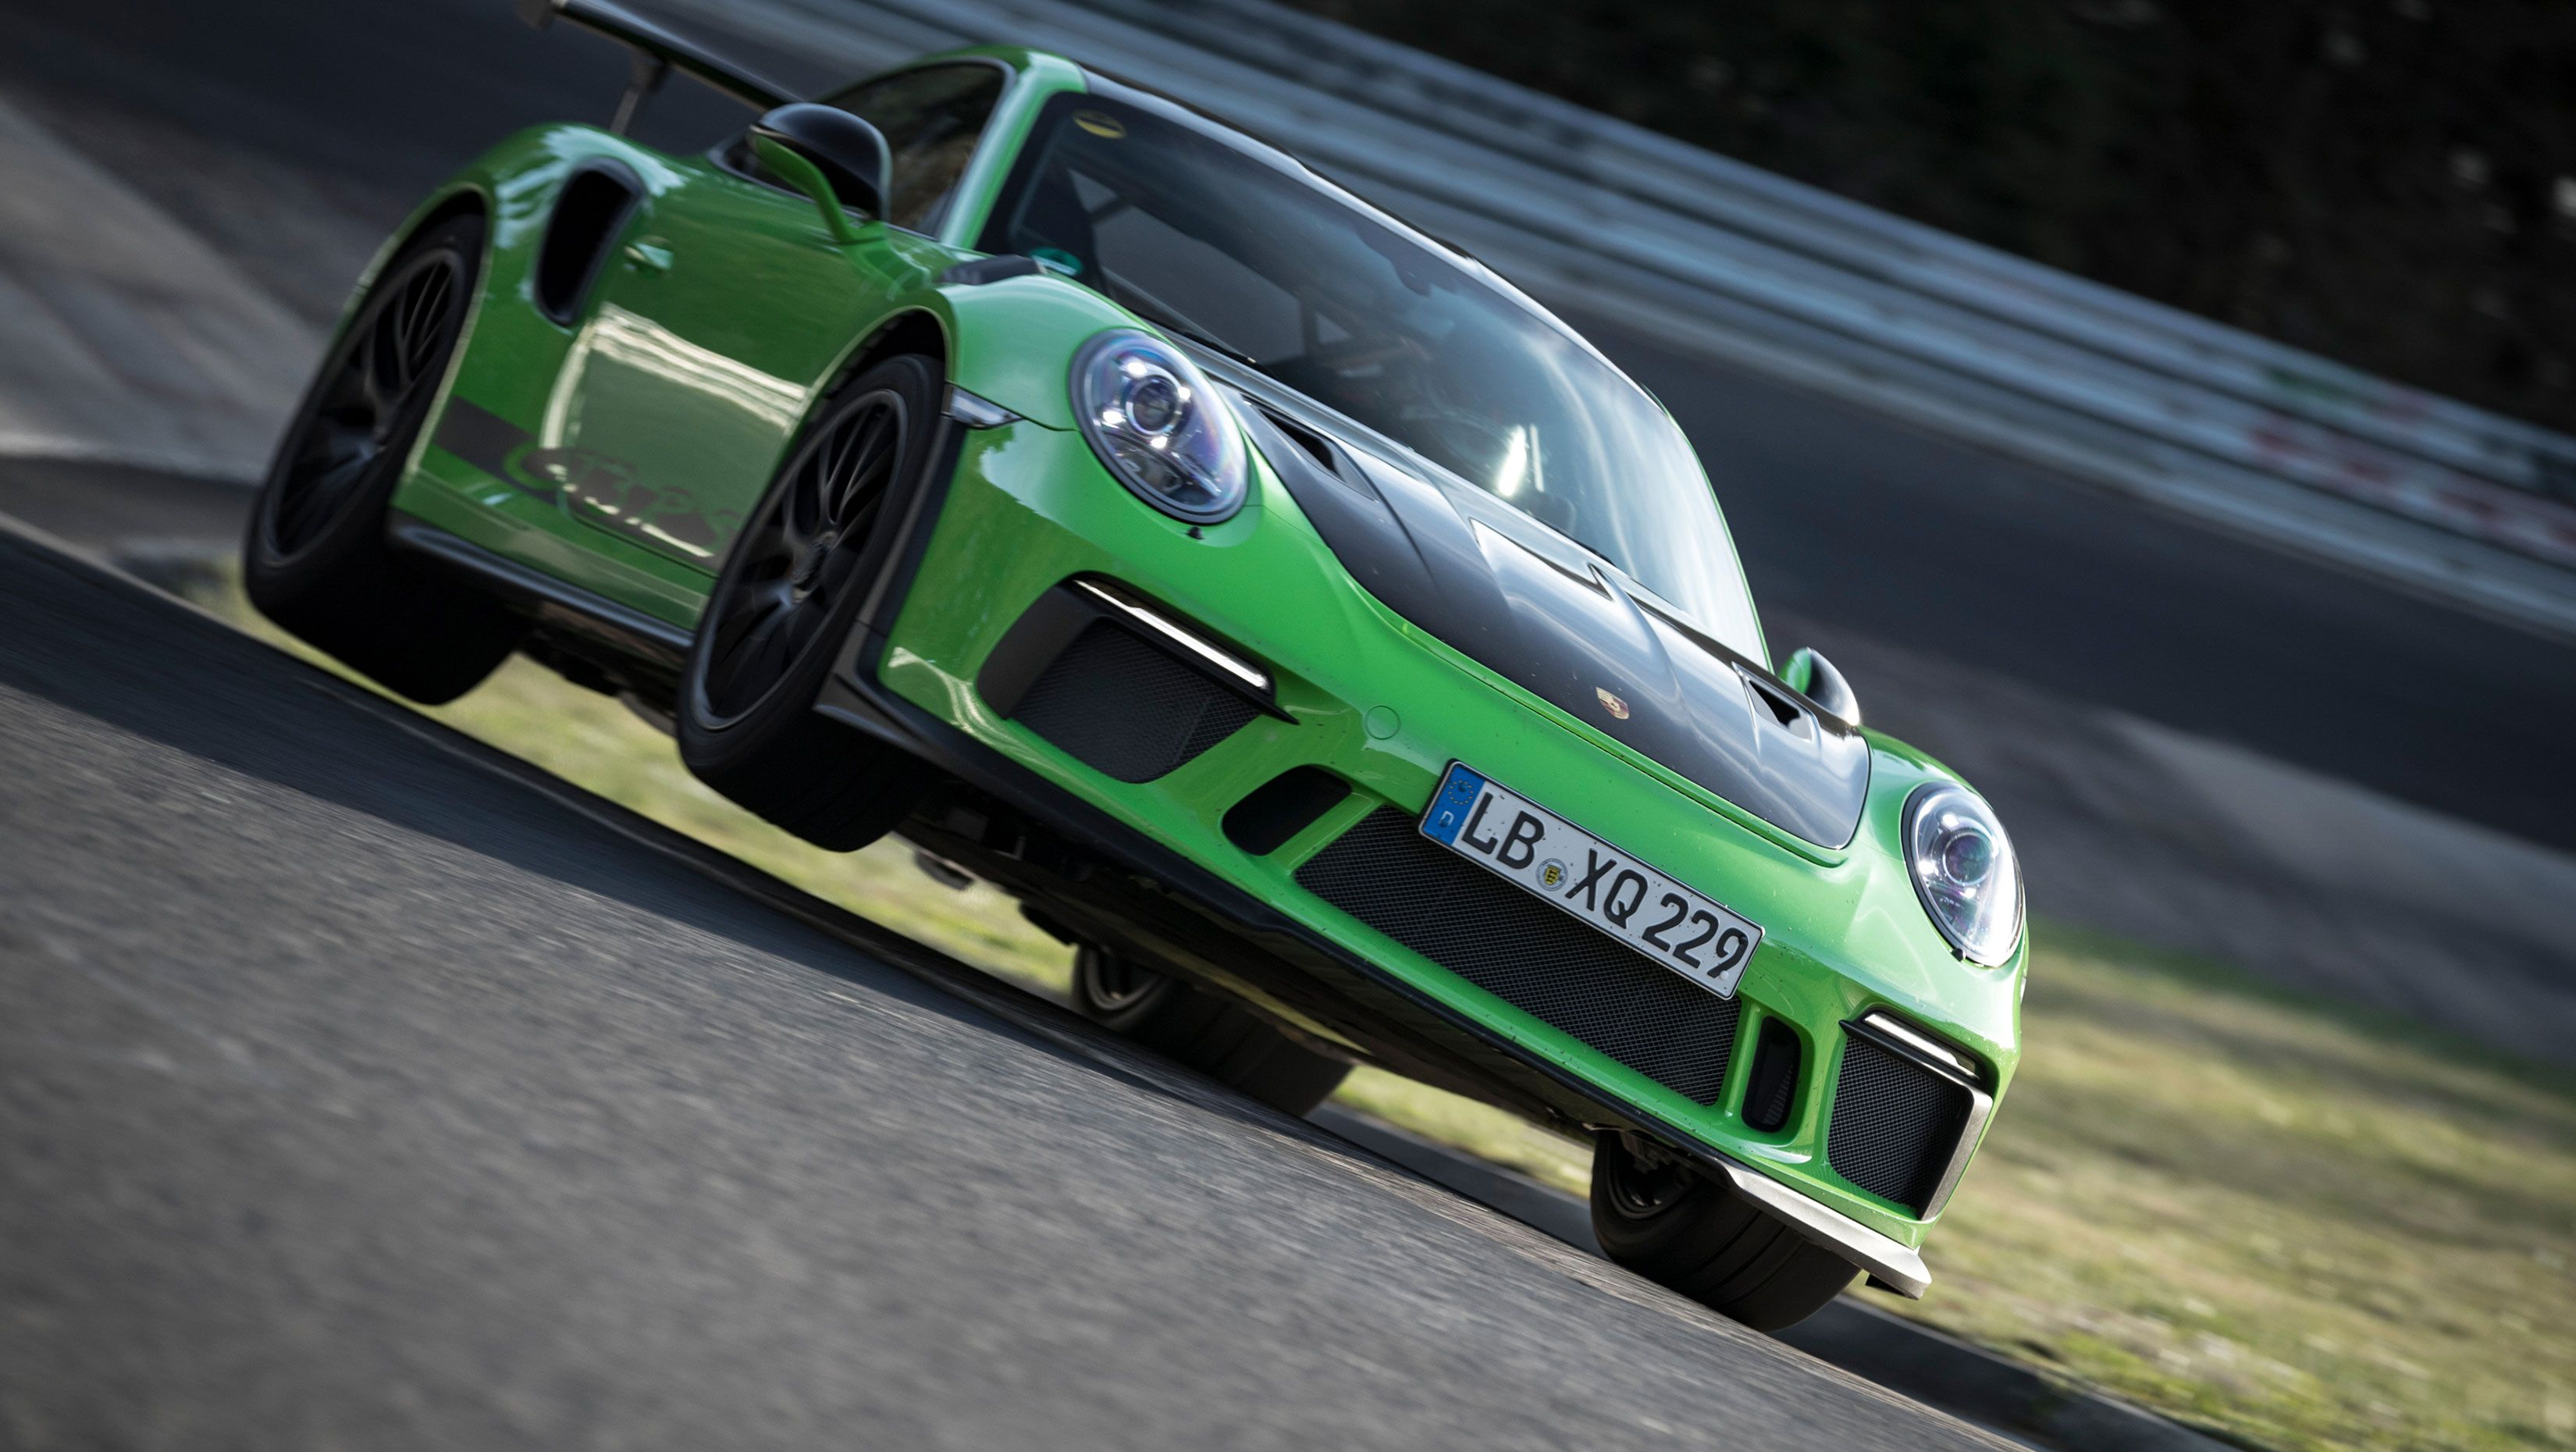 The 2019 Porsche 911 Gt3 Rs Just Ran A 6 56 4 At Nurburgring